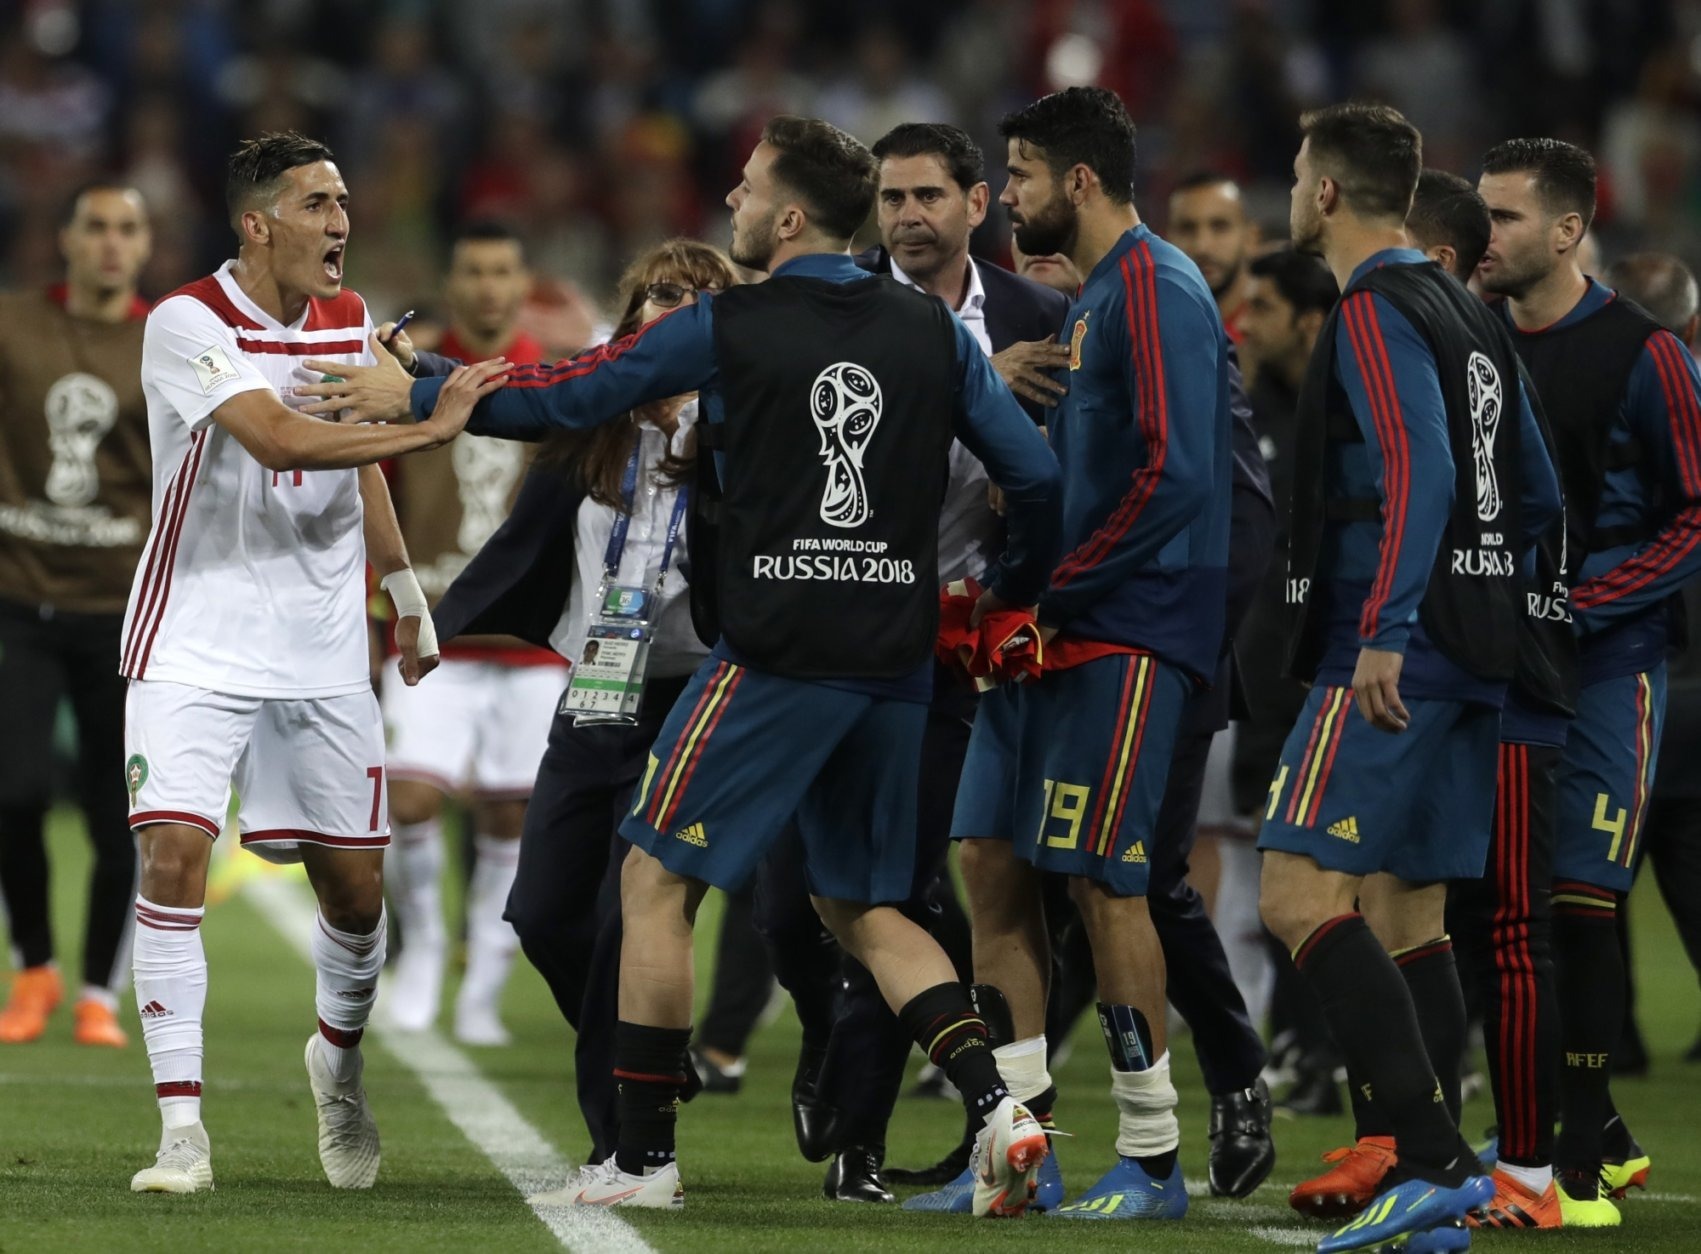 Morocco's Faycal Fajr, left, argues with Spain's players after the group B match between Spain and Morocco at the 2018 soccer World Cup at the Kaliningrad Stadium in Kaliningrad, Russia, Monday, June 25, 2018. (AP Photo/Petr David Josek)